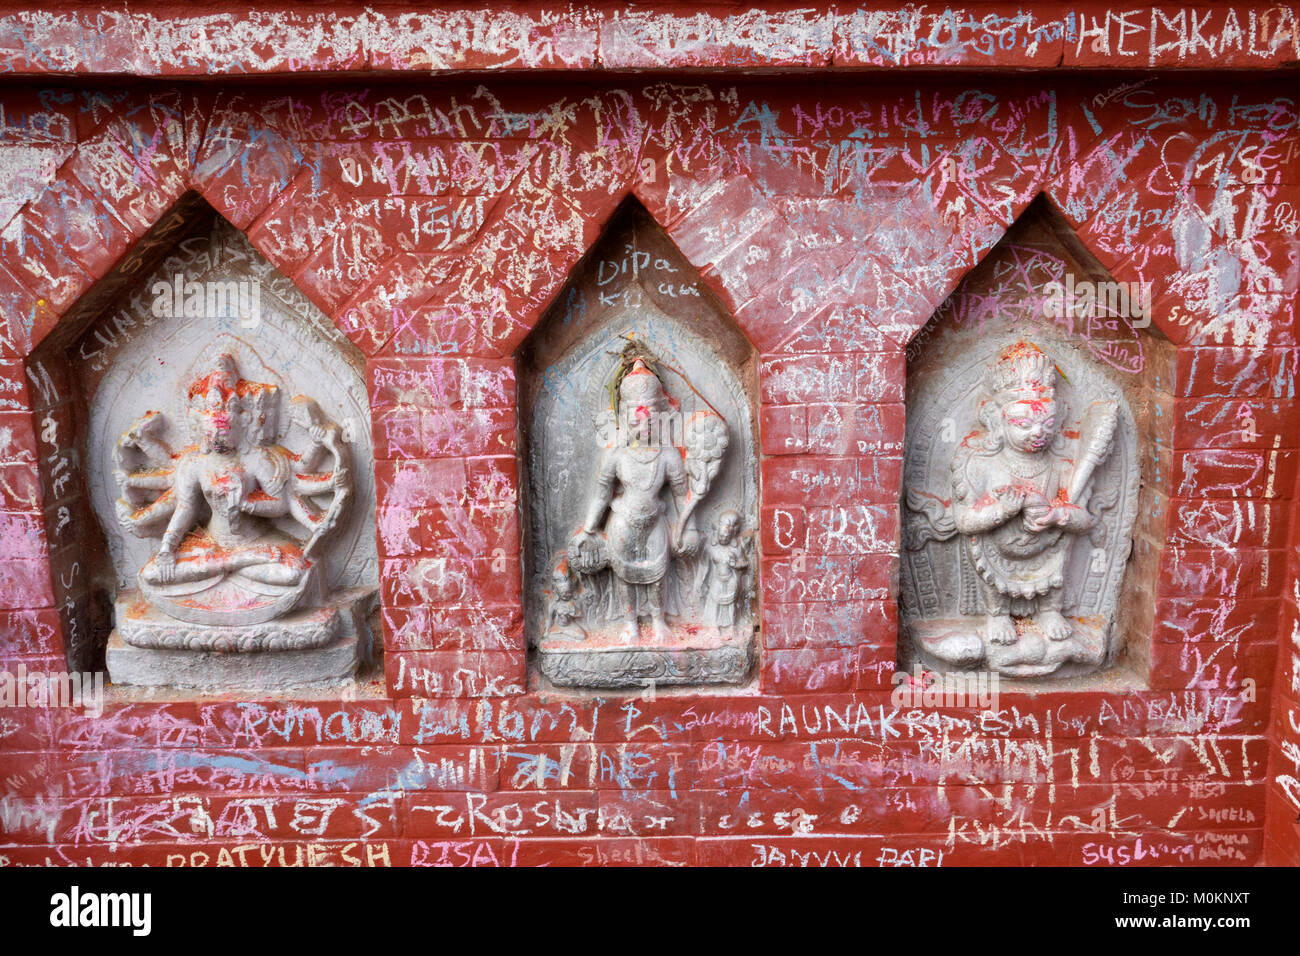 Chalk covered shrines at Swayambhunath Buddhist temple, Kathmandu, Nepal - Stock Image